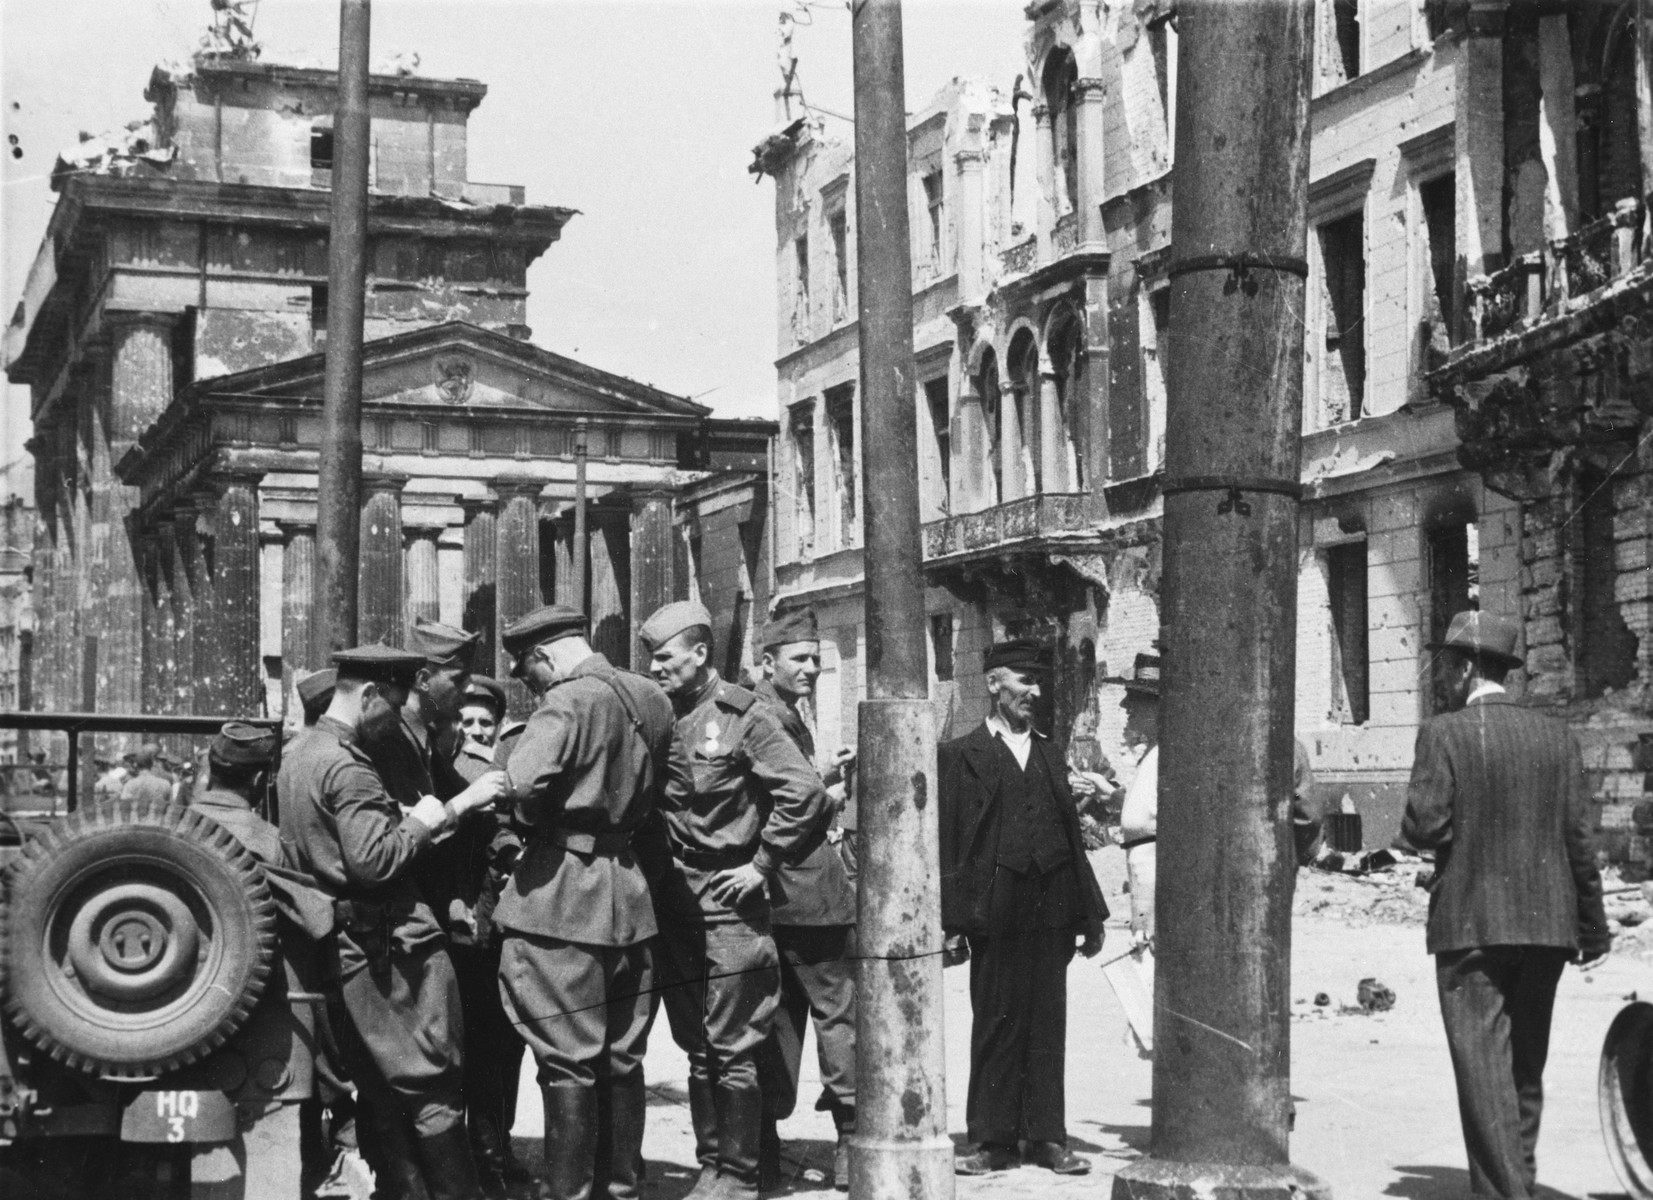 Red Army soldiers congregate on a street in Berlin after the fall of the city.